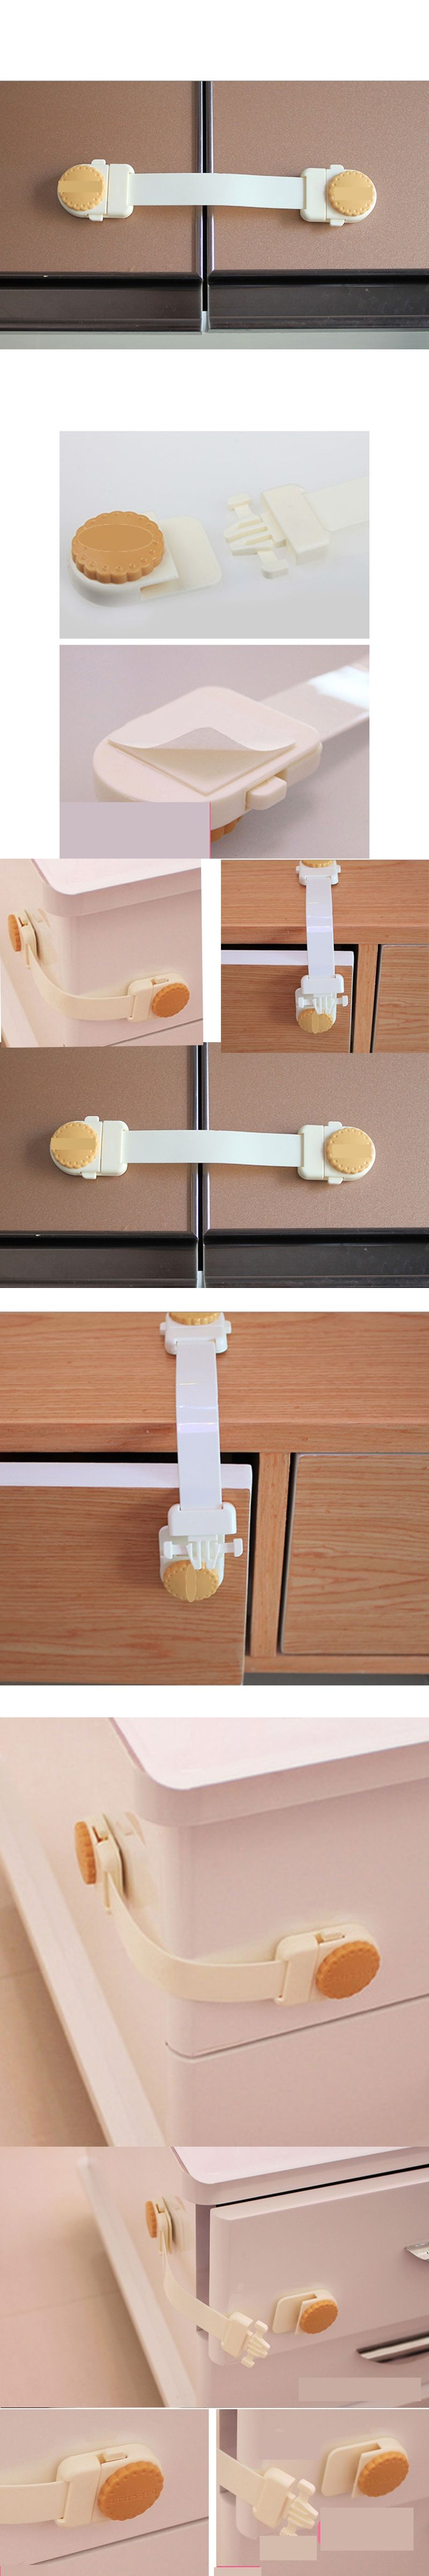 1 pc Bendy Safety Plastic Locks For Child Kids Cabinet Door Drawers